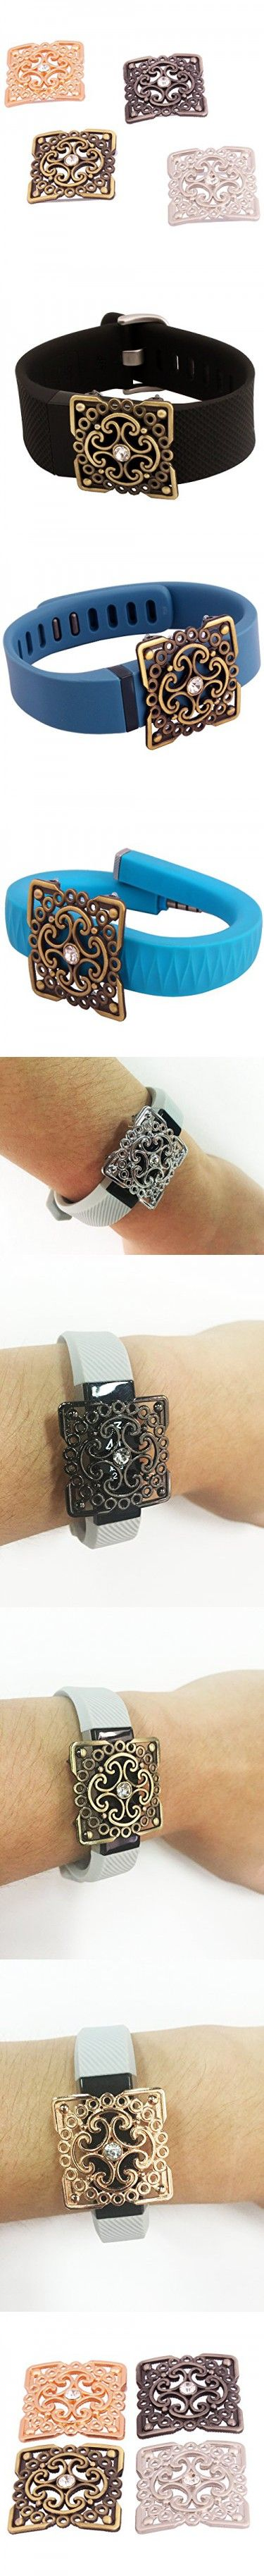 """Yavive® Fitness Band Bling """"Faith"""" - Fitness Band Accessory Square Ornament for Fitbit Charge/charge Hr/Fitbit Alta/jawbone up24/Fitbit Flex (ALL 4 colors)"""